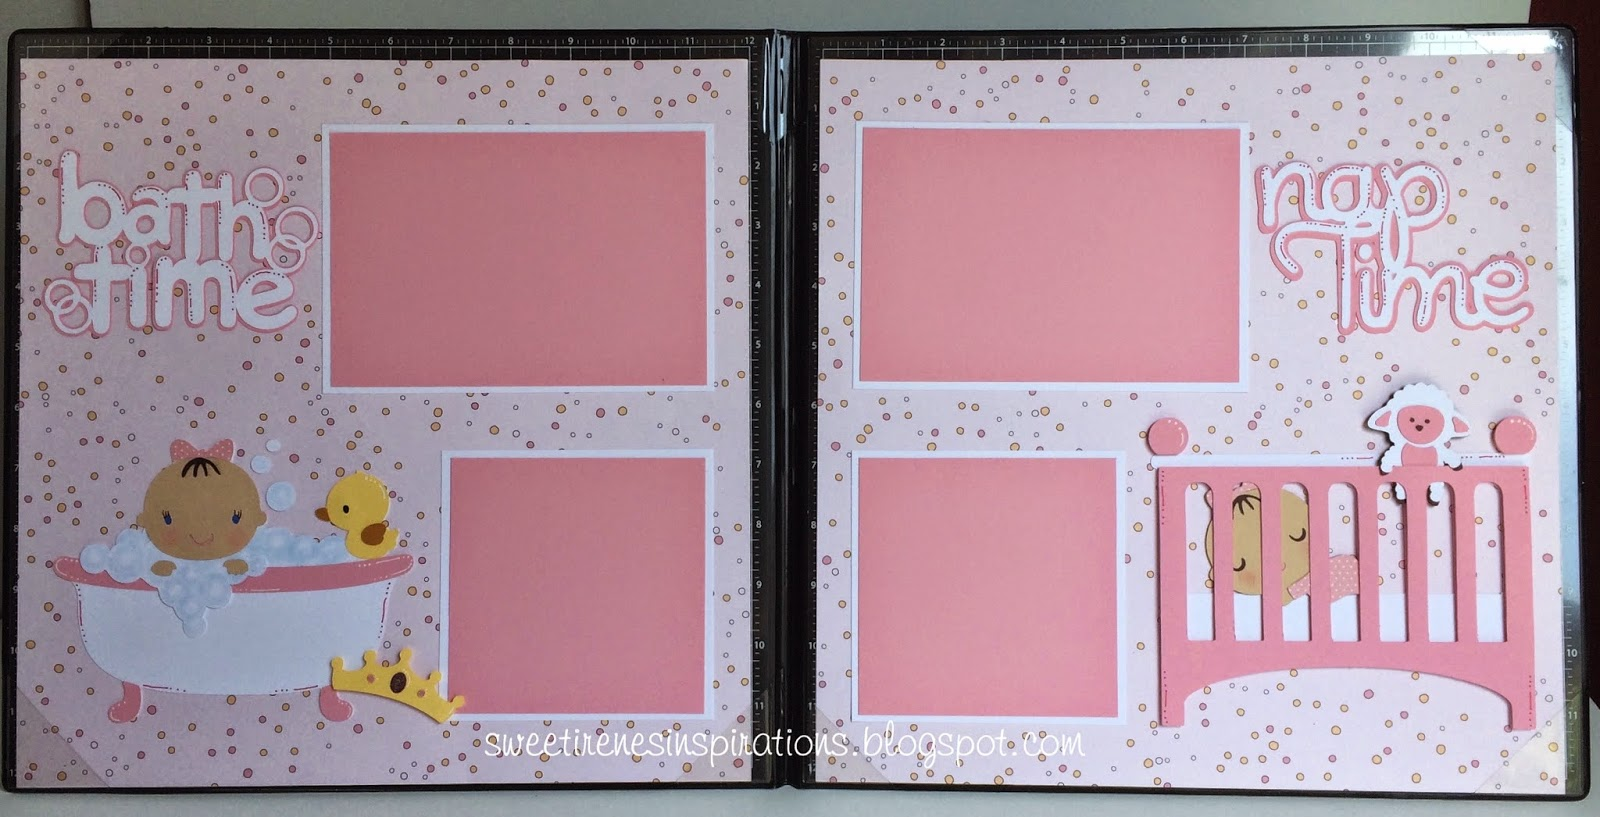 Baby girl scrapbook ideas - Baby Girl Scrapbook Pages Bath And Nap Time